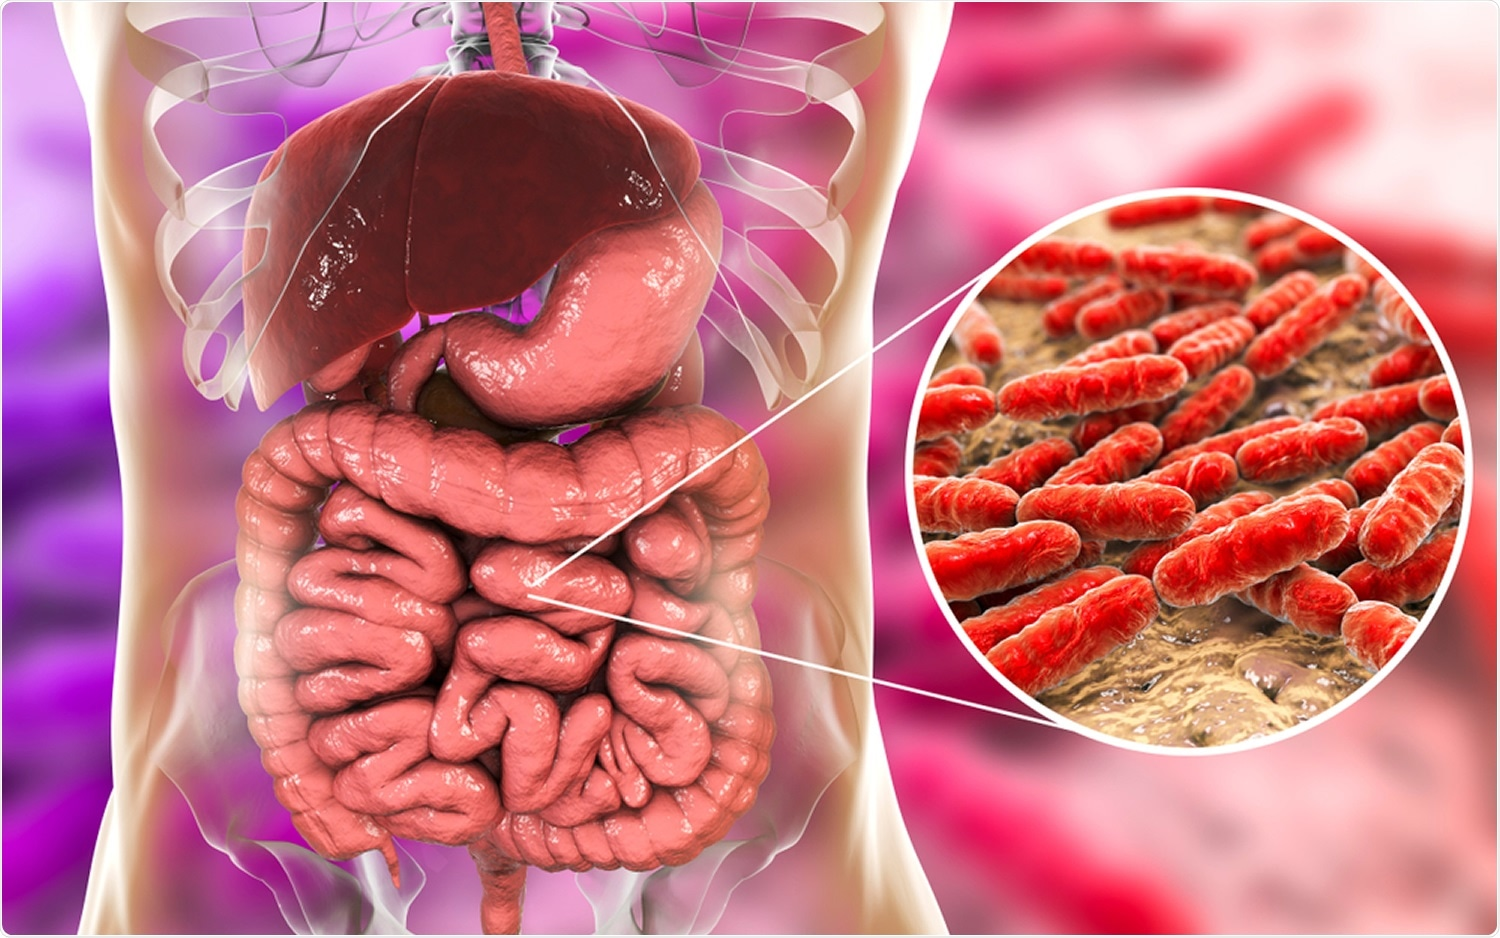 Study: Bioaccumulation of therapeutic drugs by human gut bacteria. Image Credit: Kateryna Kon / Shutterstock